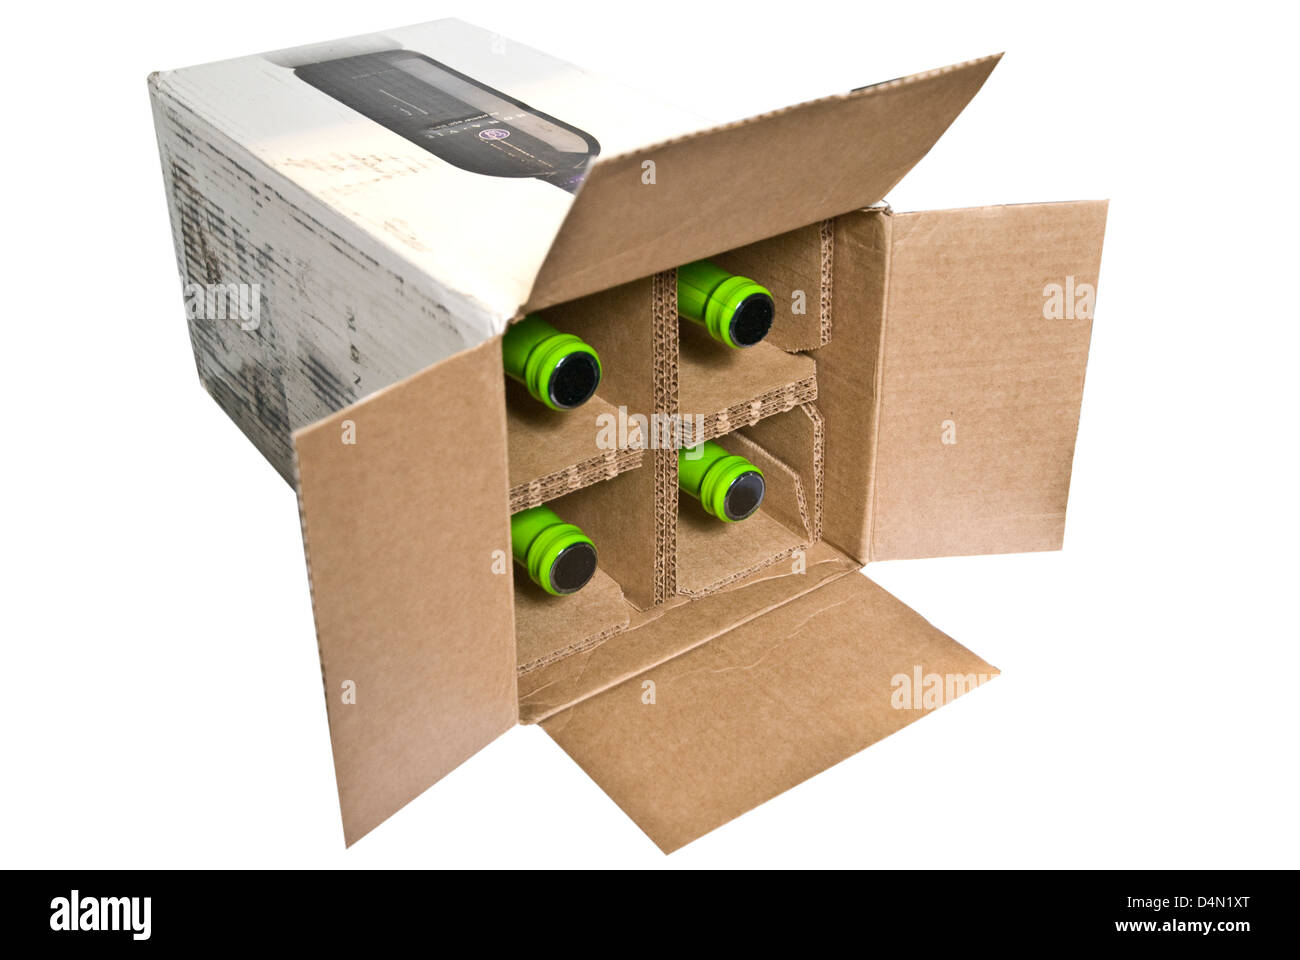 Cardboard Box Dividers Four Bottles In A Cardboard Box With Dividers For Shipping Stock